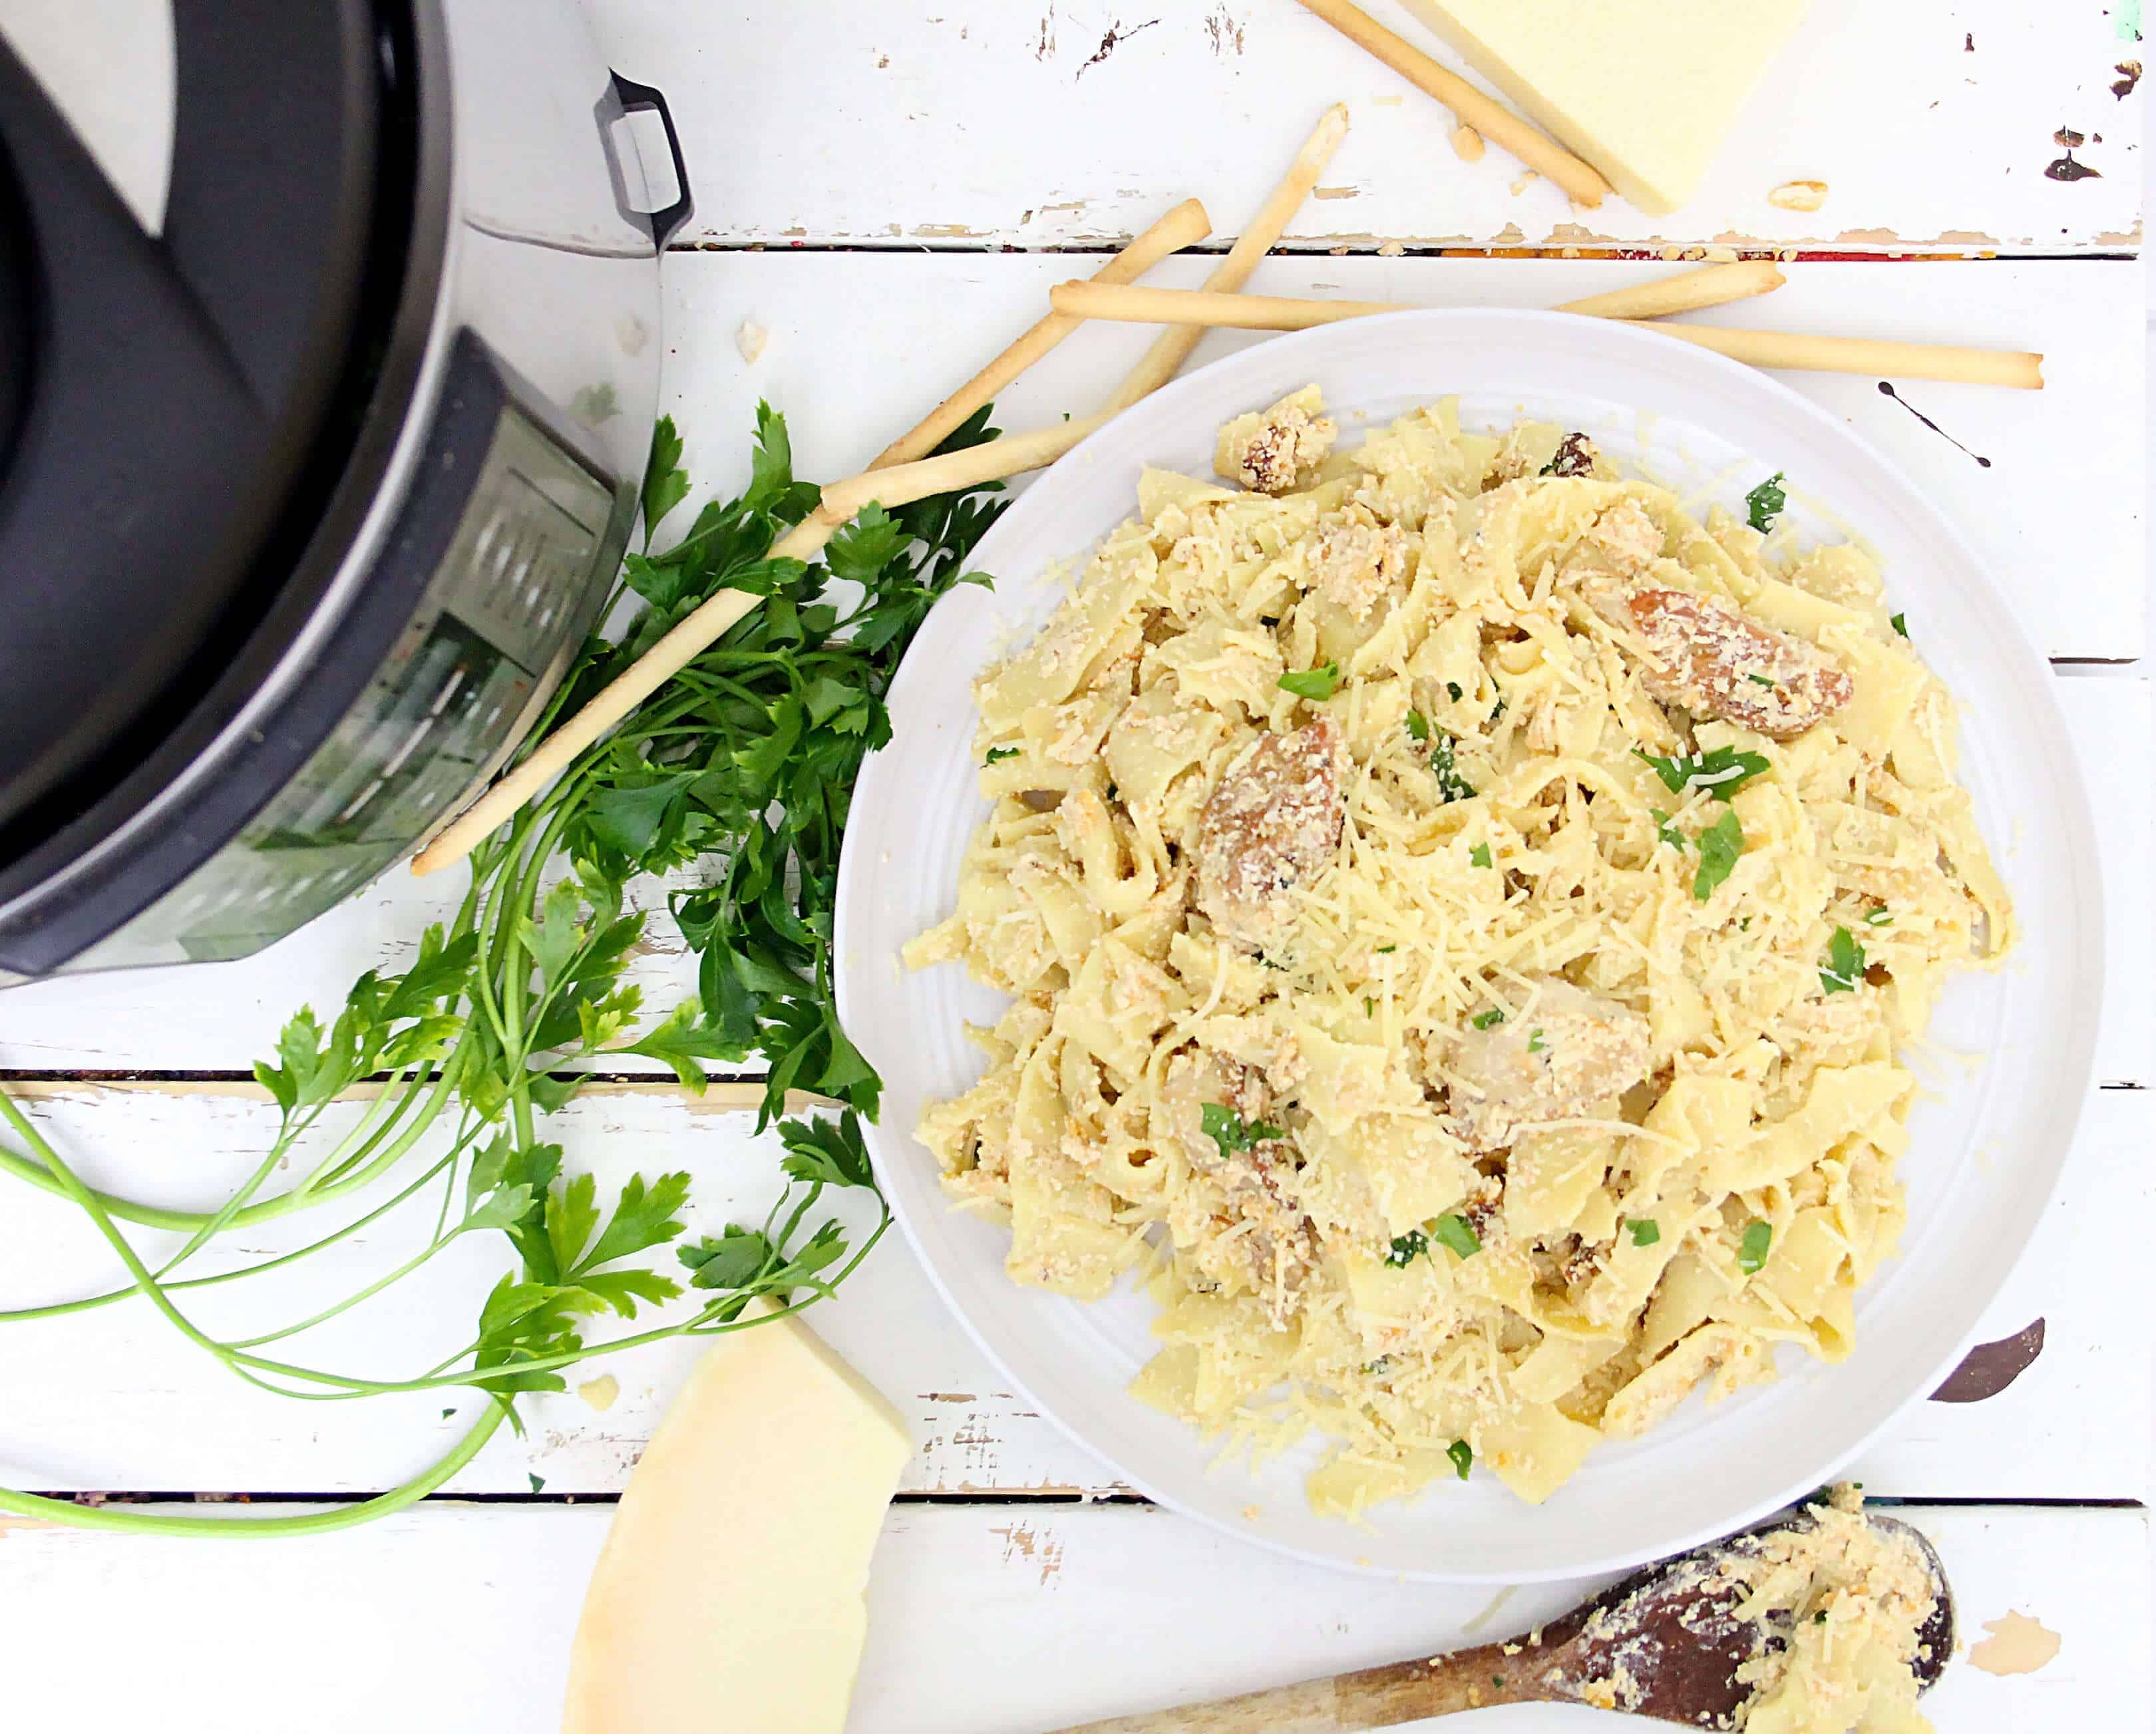 Finished Instant Pot Chicken Alfredo dish